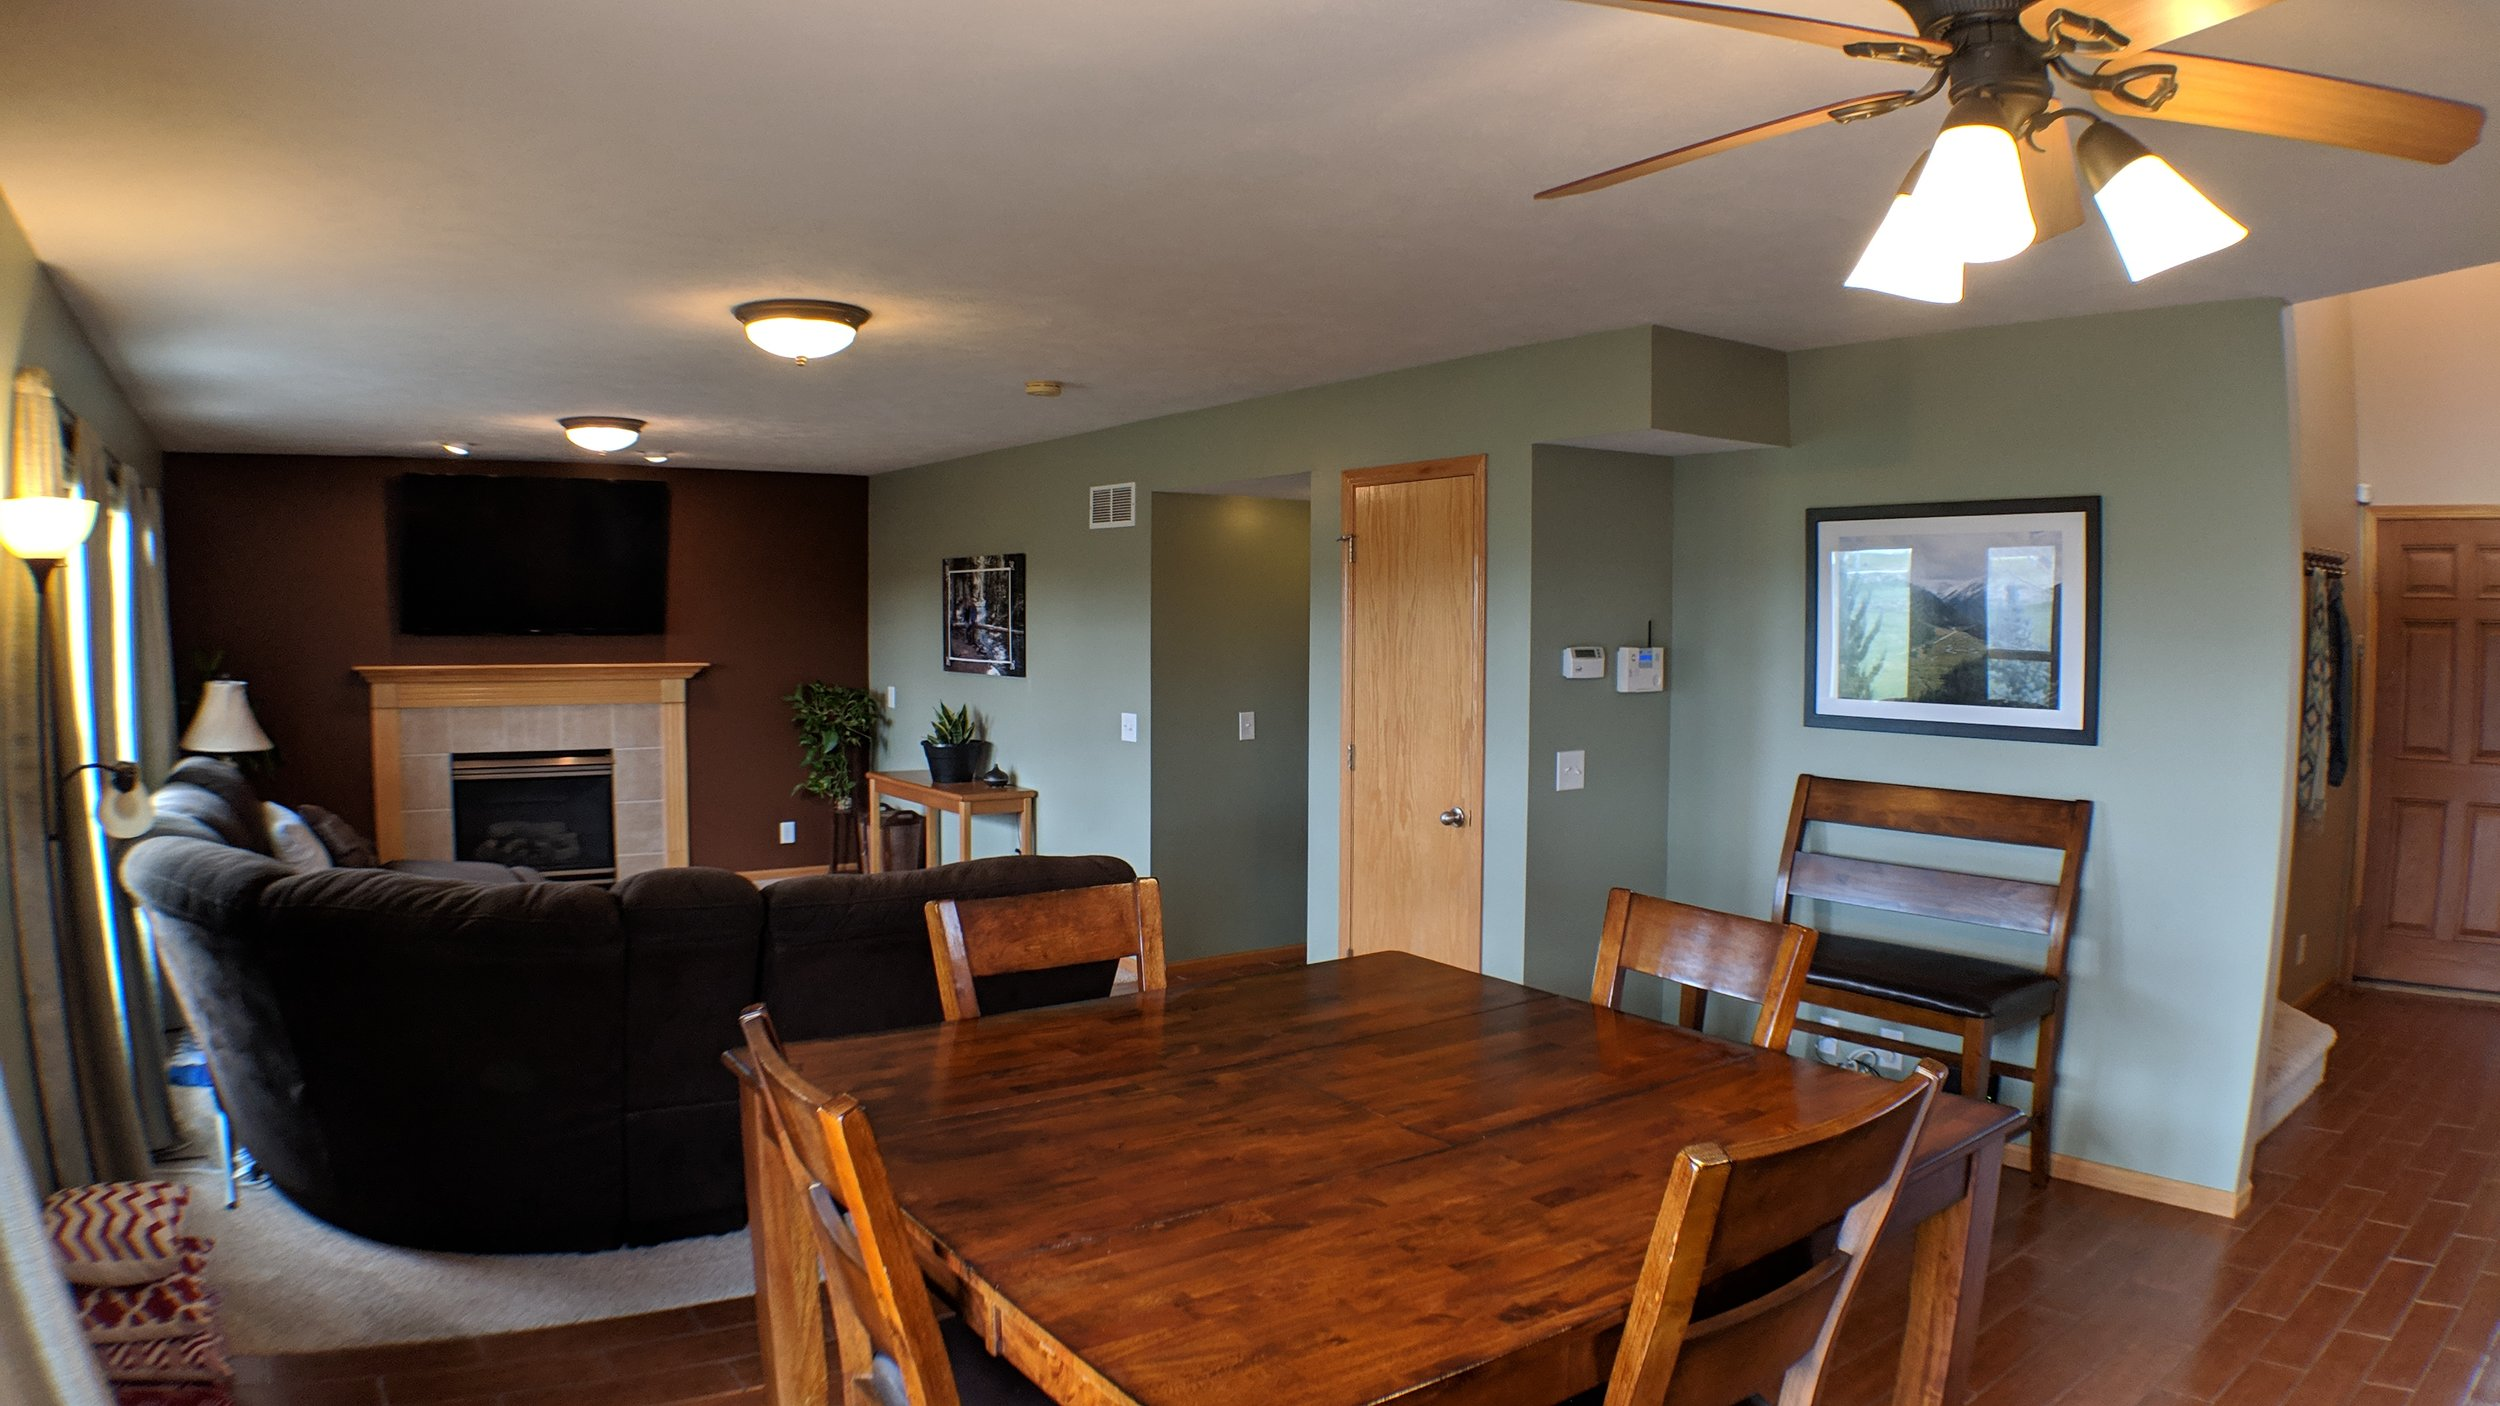 Open floor plan from kitchen through dining to family room.